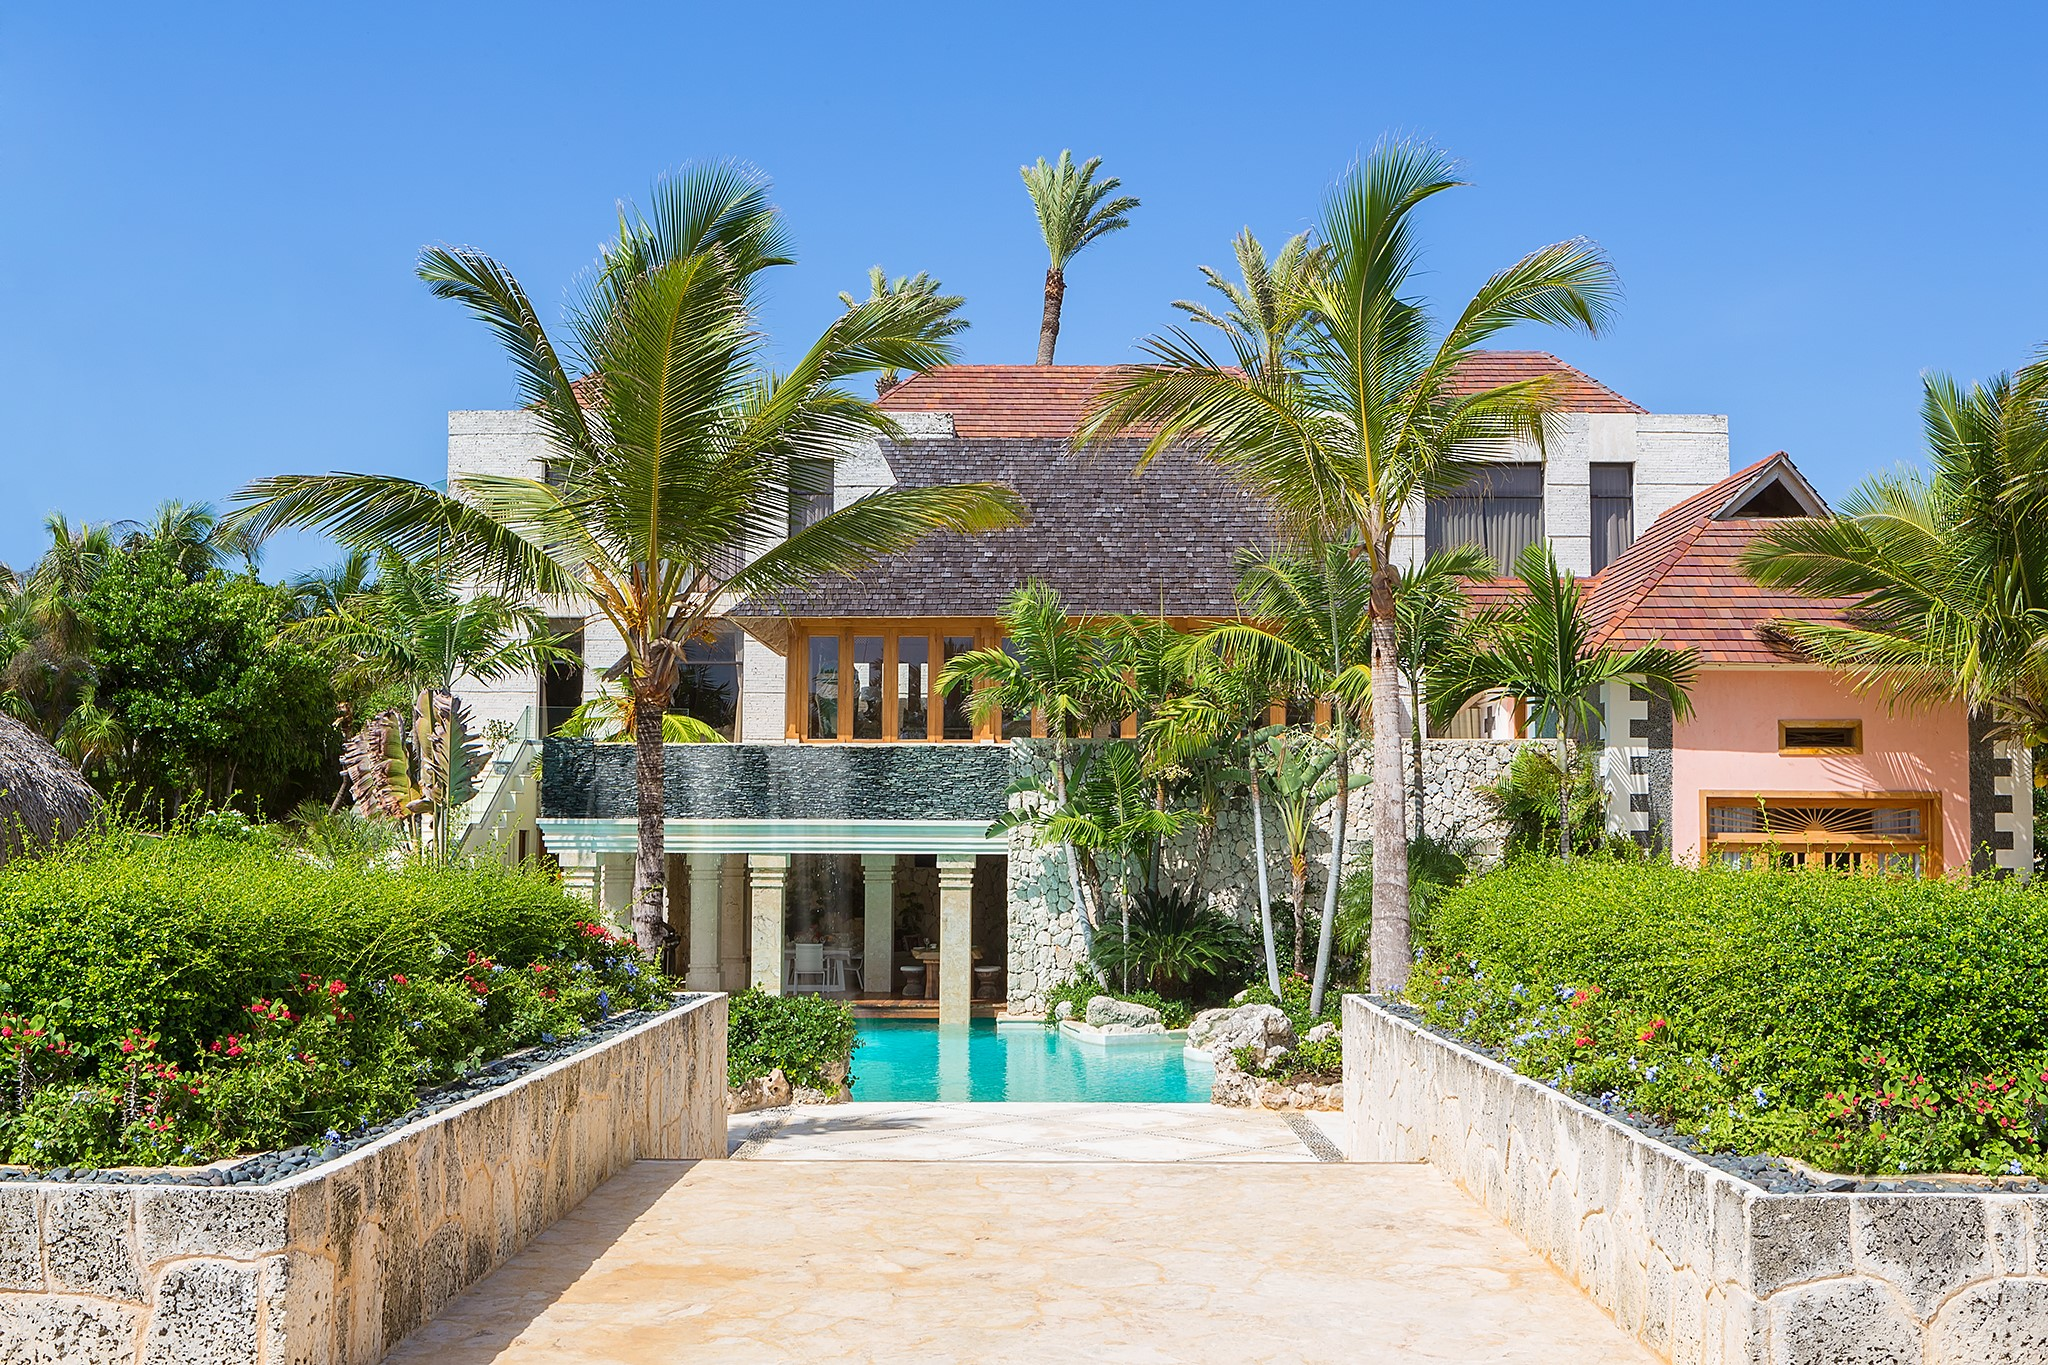 <b>5 Bedrooms, 14,897 sq. ft.</b><br/>Jack Nicklaus Signature Golf Front Villa and Ocean Views